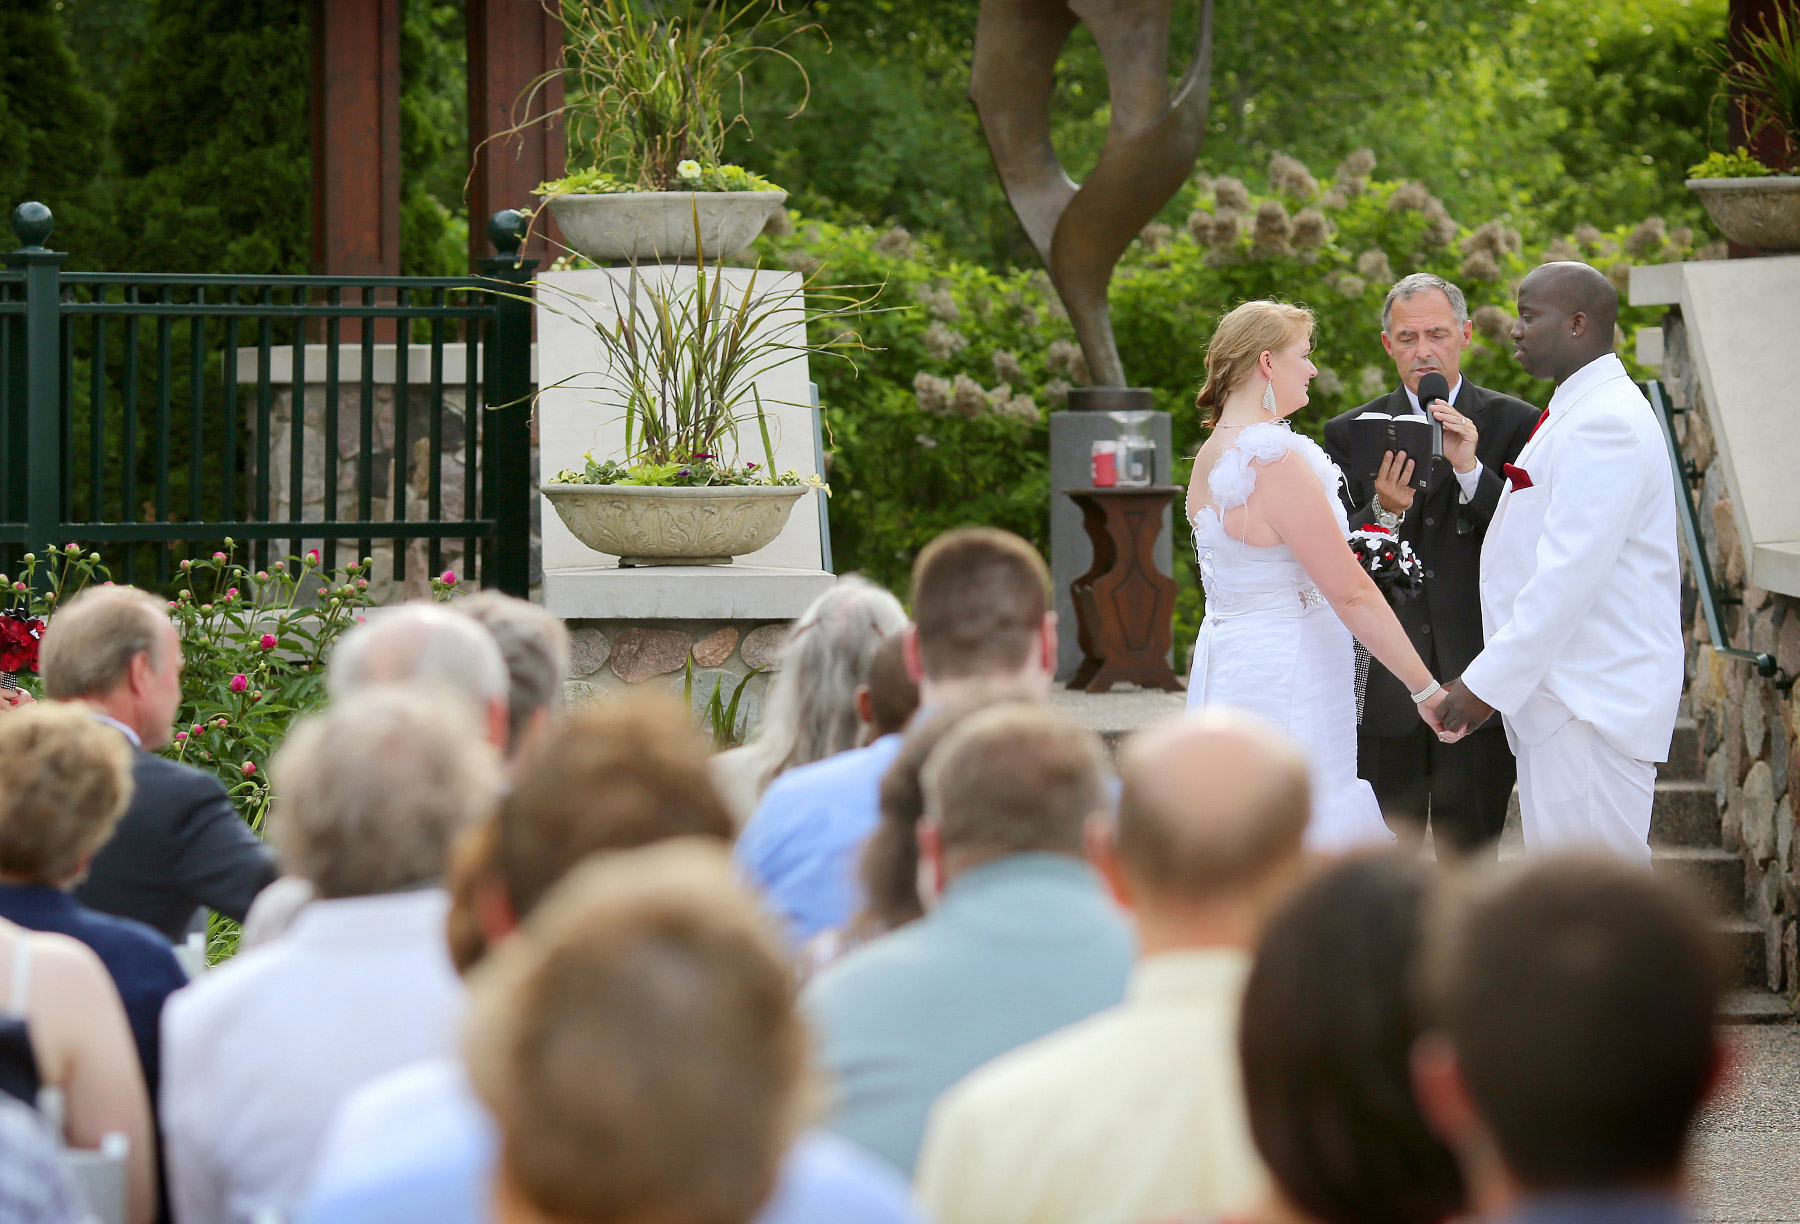 07-Minneapolis-Minnesota-Wedding-Photography-by-Vick-Photography-at-Plymouth-Creek-Center-Outdoor-Ceremony-Emily-&-Lonnie.jpg